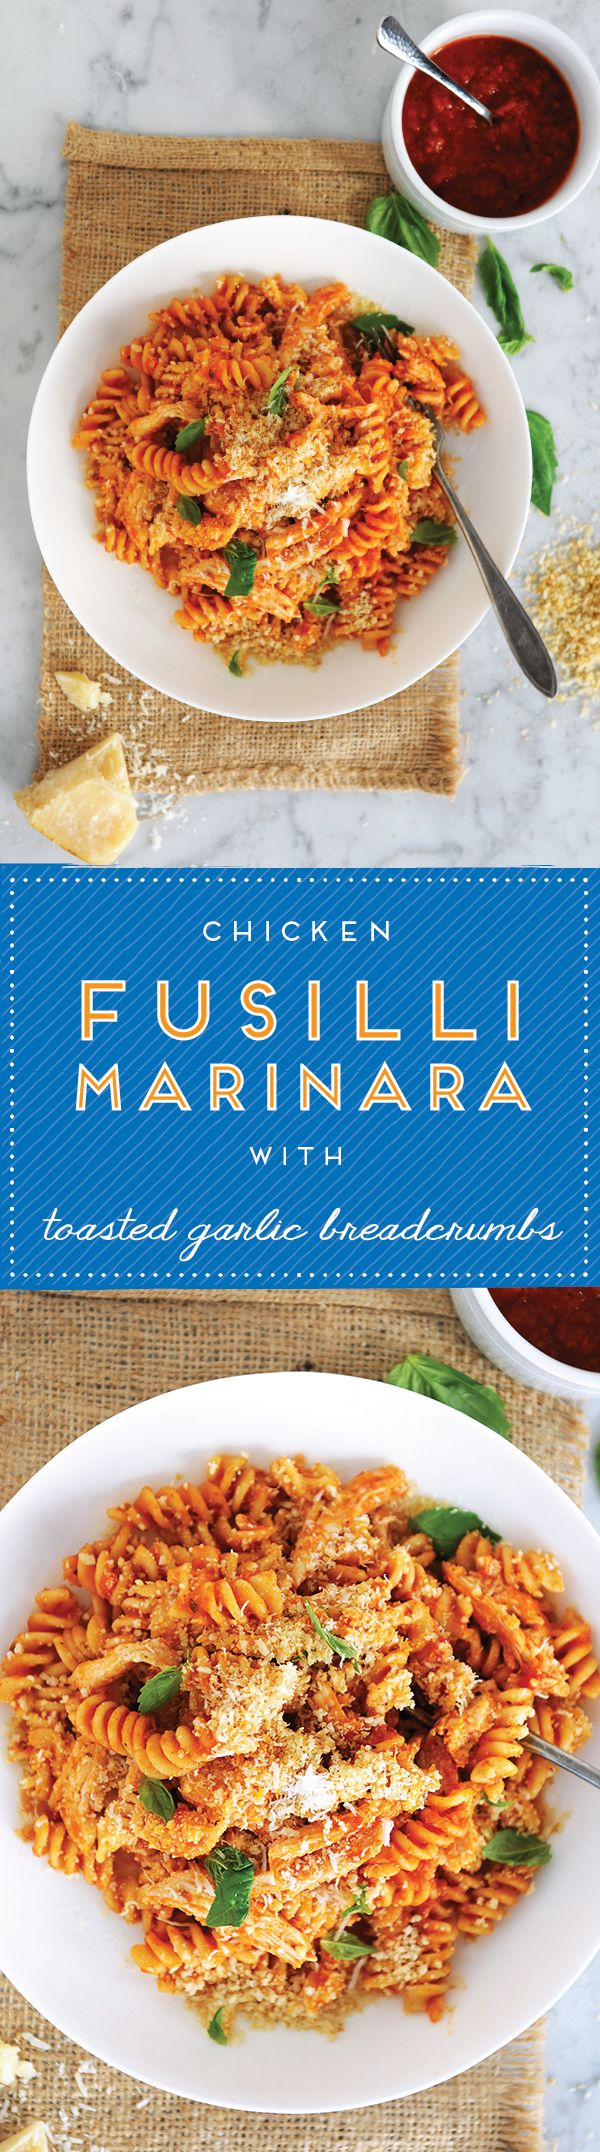 "Who wouldn't want this deliciousness? // ""Fusilli Marinara with Chicken & Toasted Garlic Breadcrumbs"""